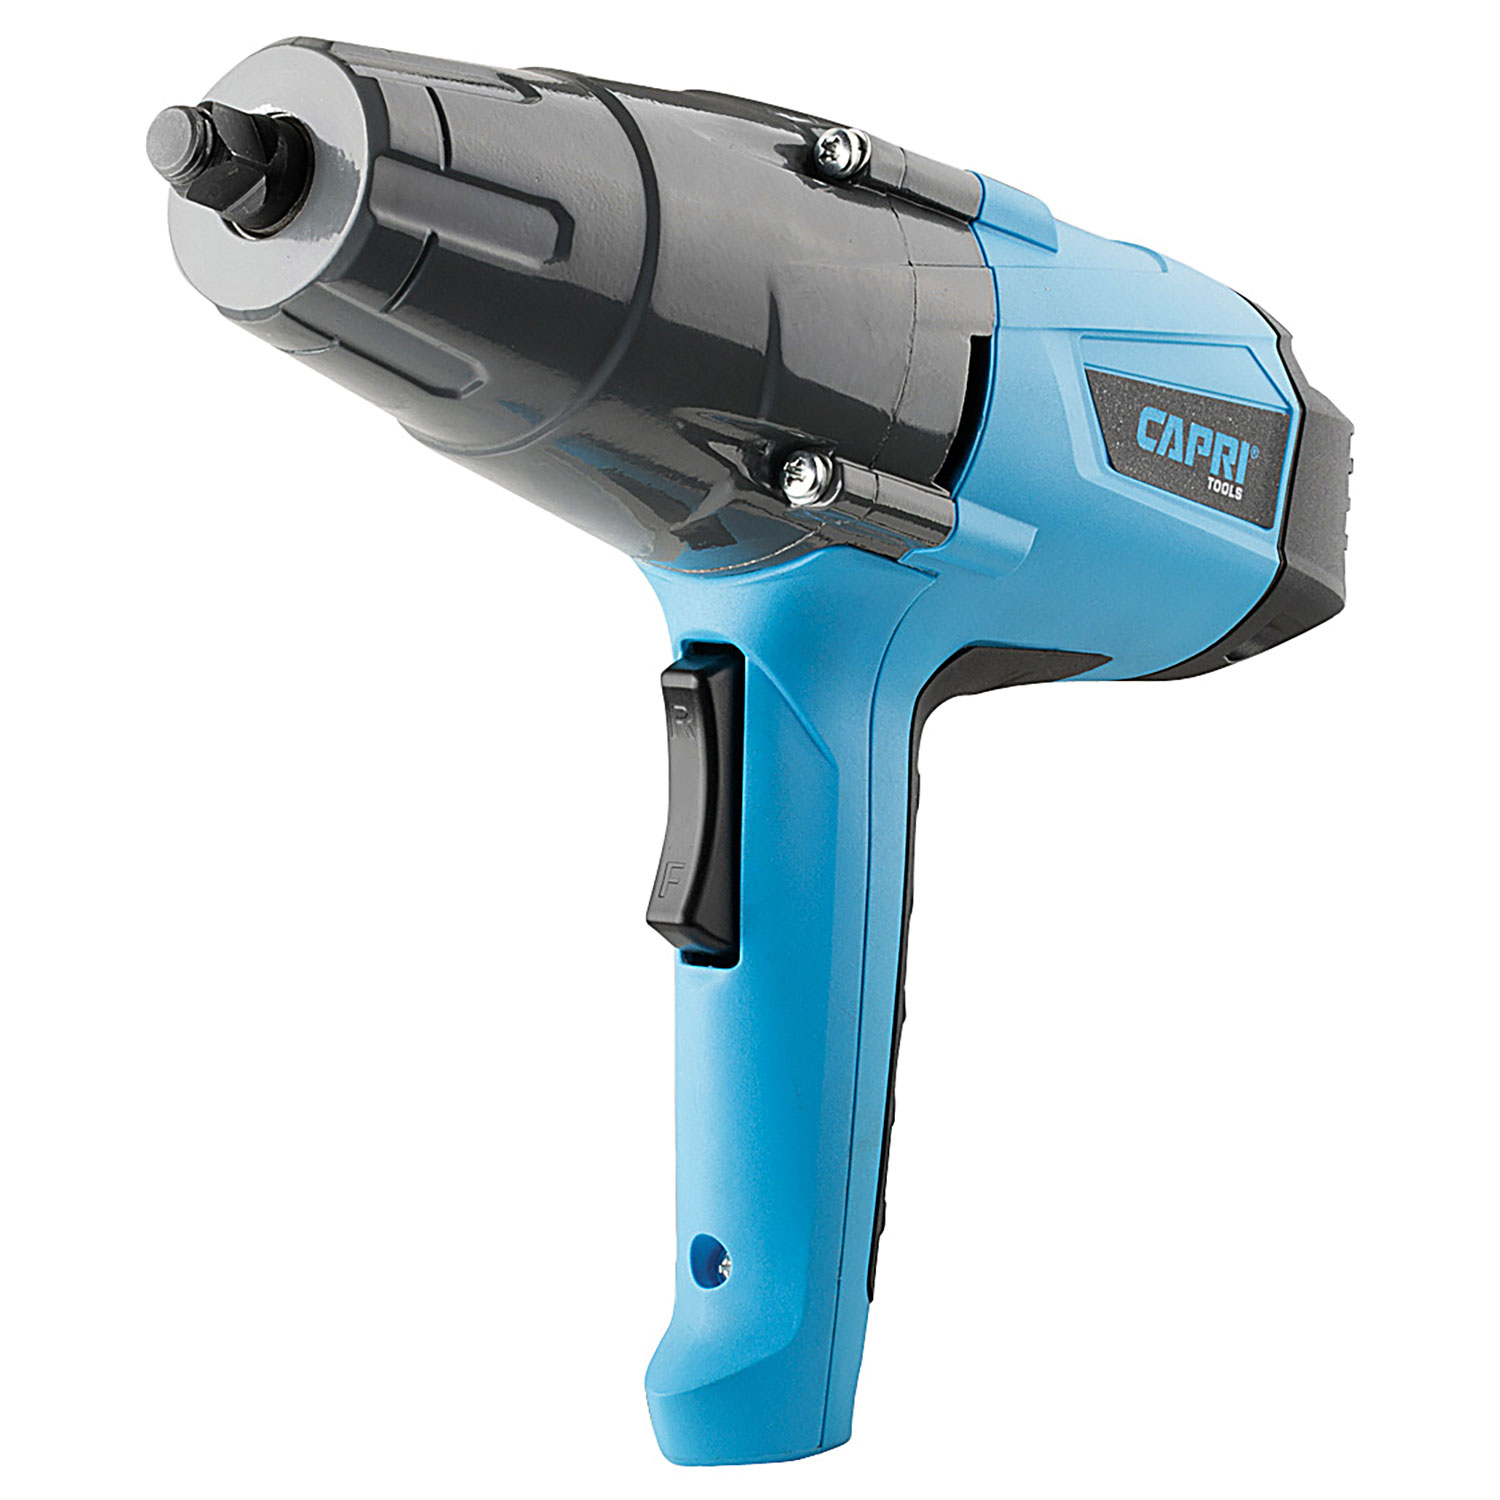 Capri Tools Powerful Impact Wrench, 260 ft-lbs, 1/2 Inch Drive, 8.5-Amps